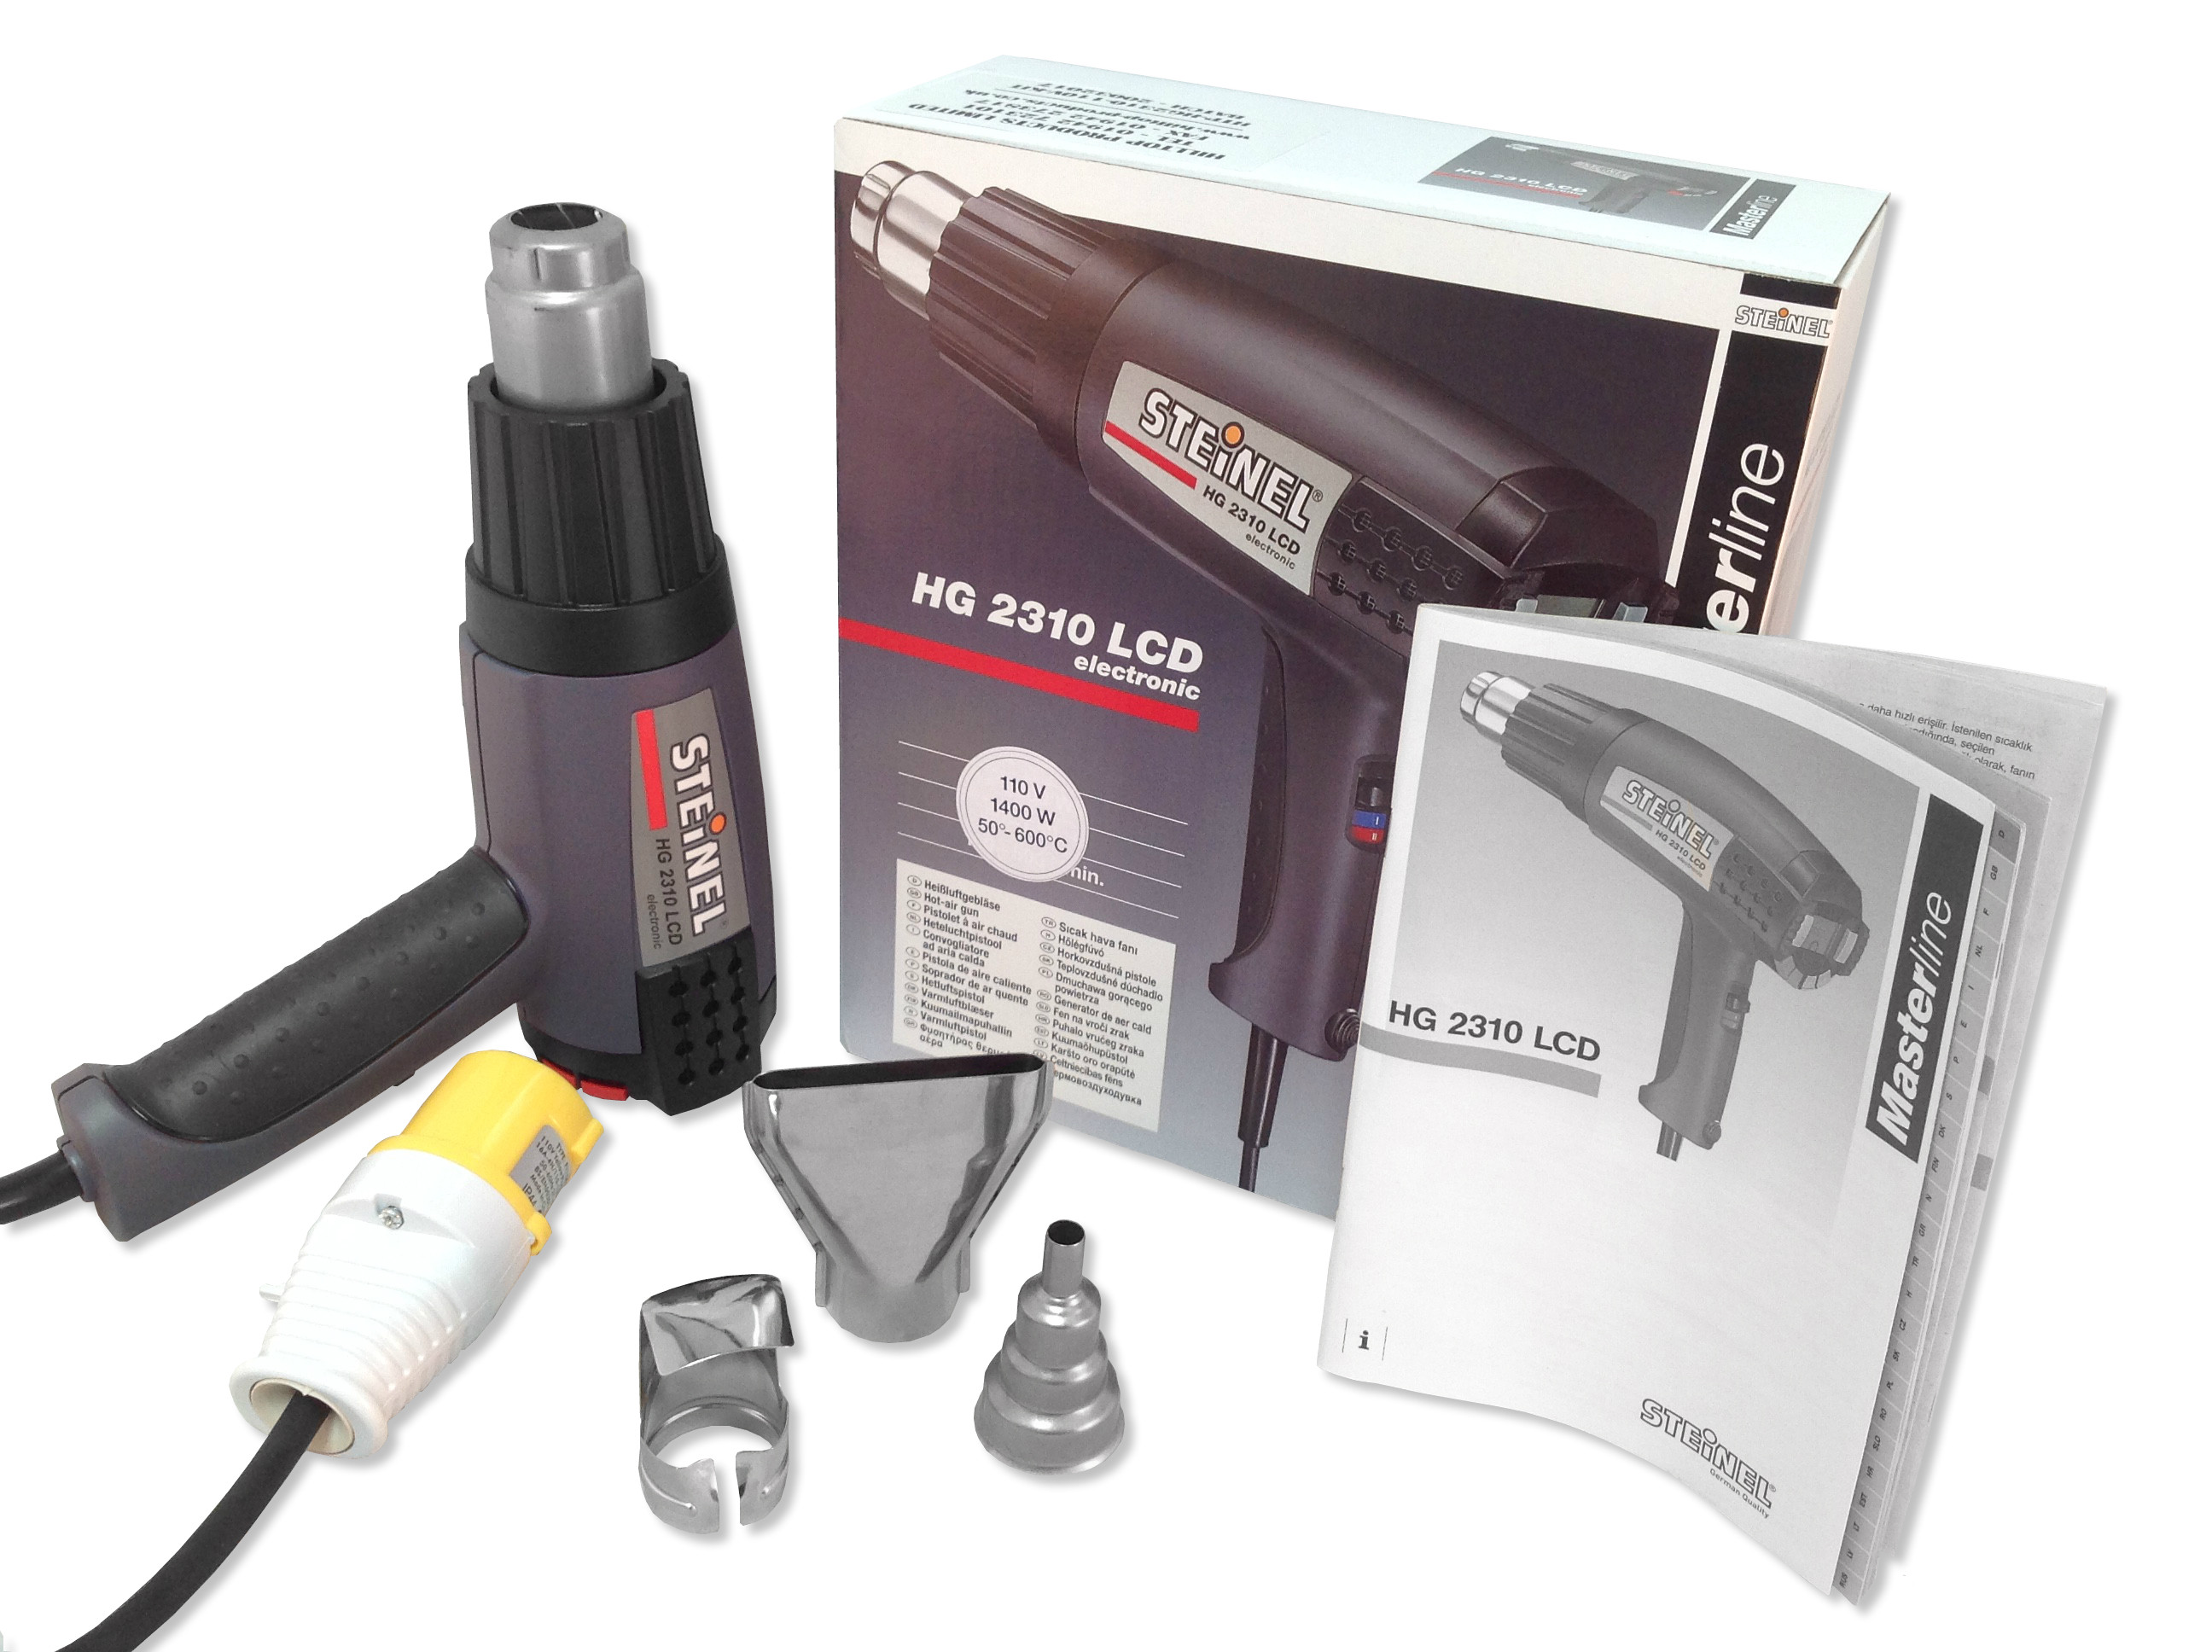 Steinel HG 2310 LCD KIT 110V - with 3 Nozzles